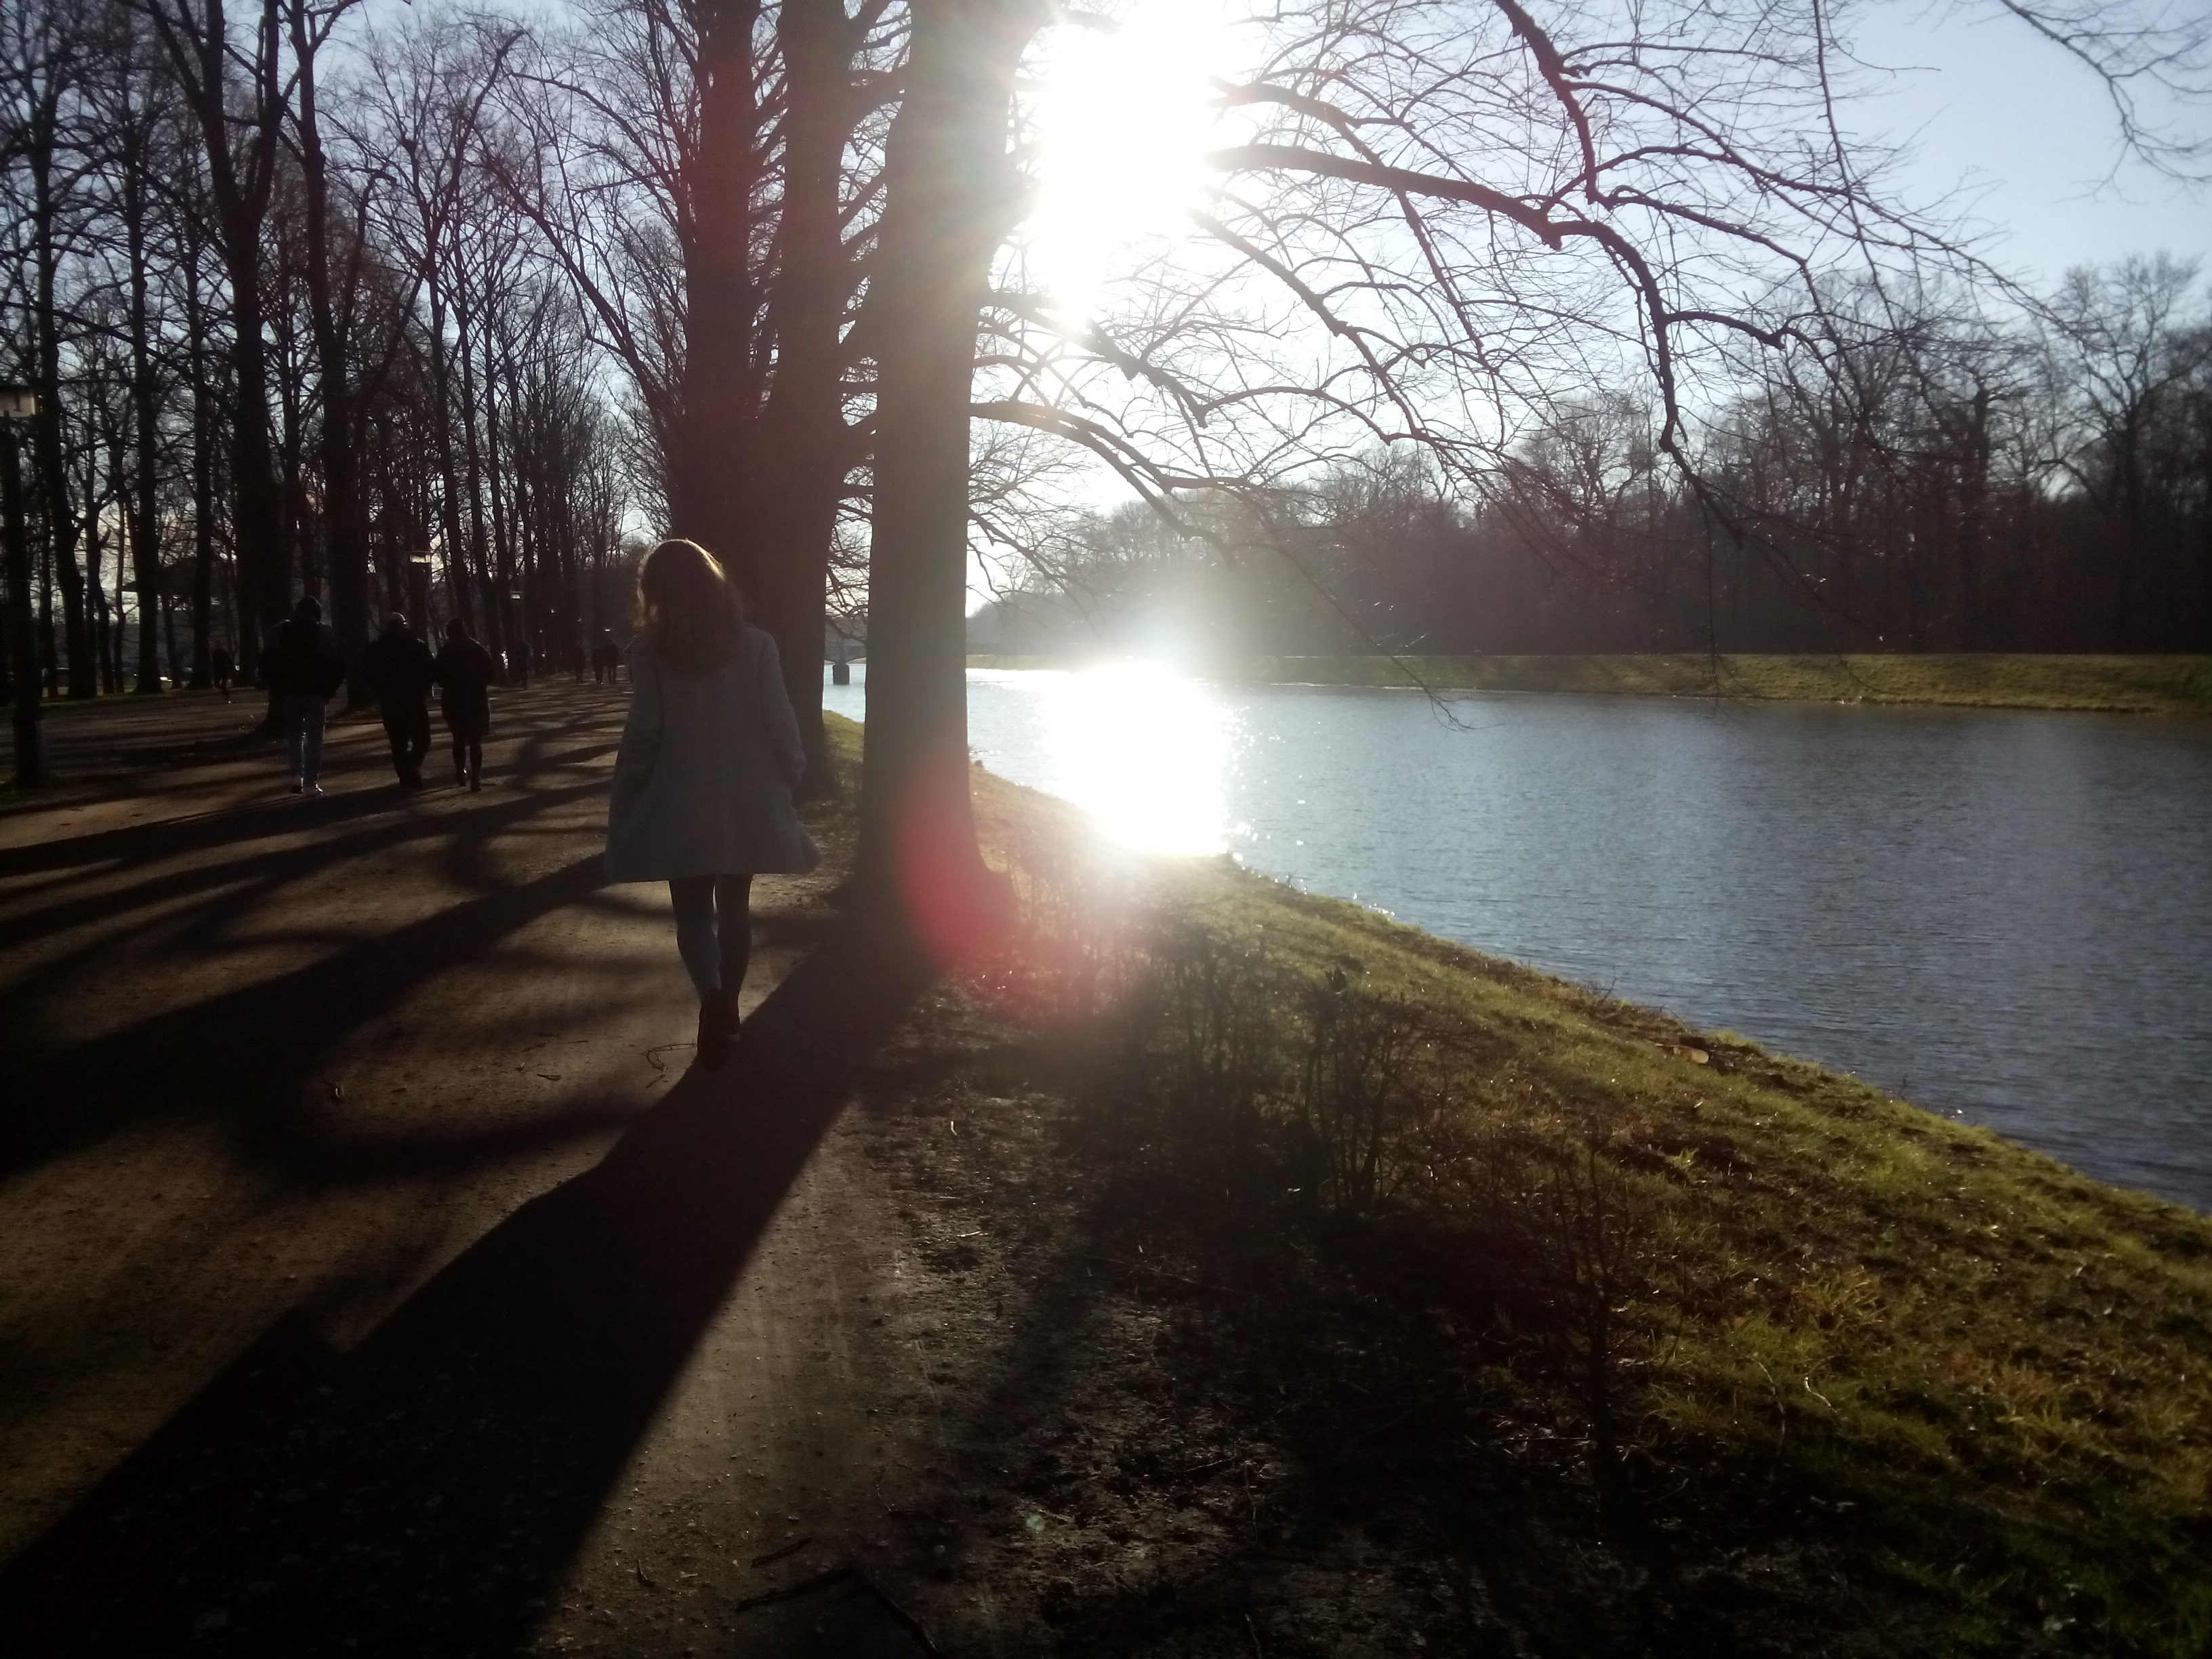 A woman walking through some trees by a river, with the sun glowing in the center